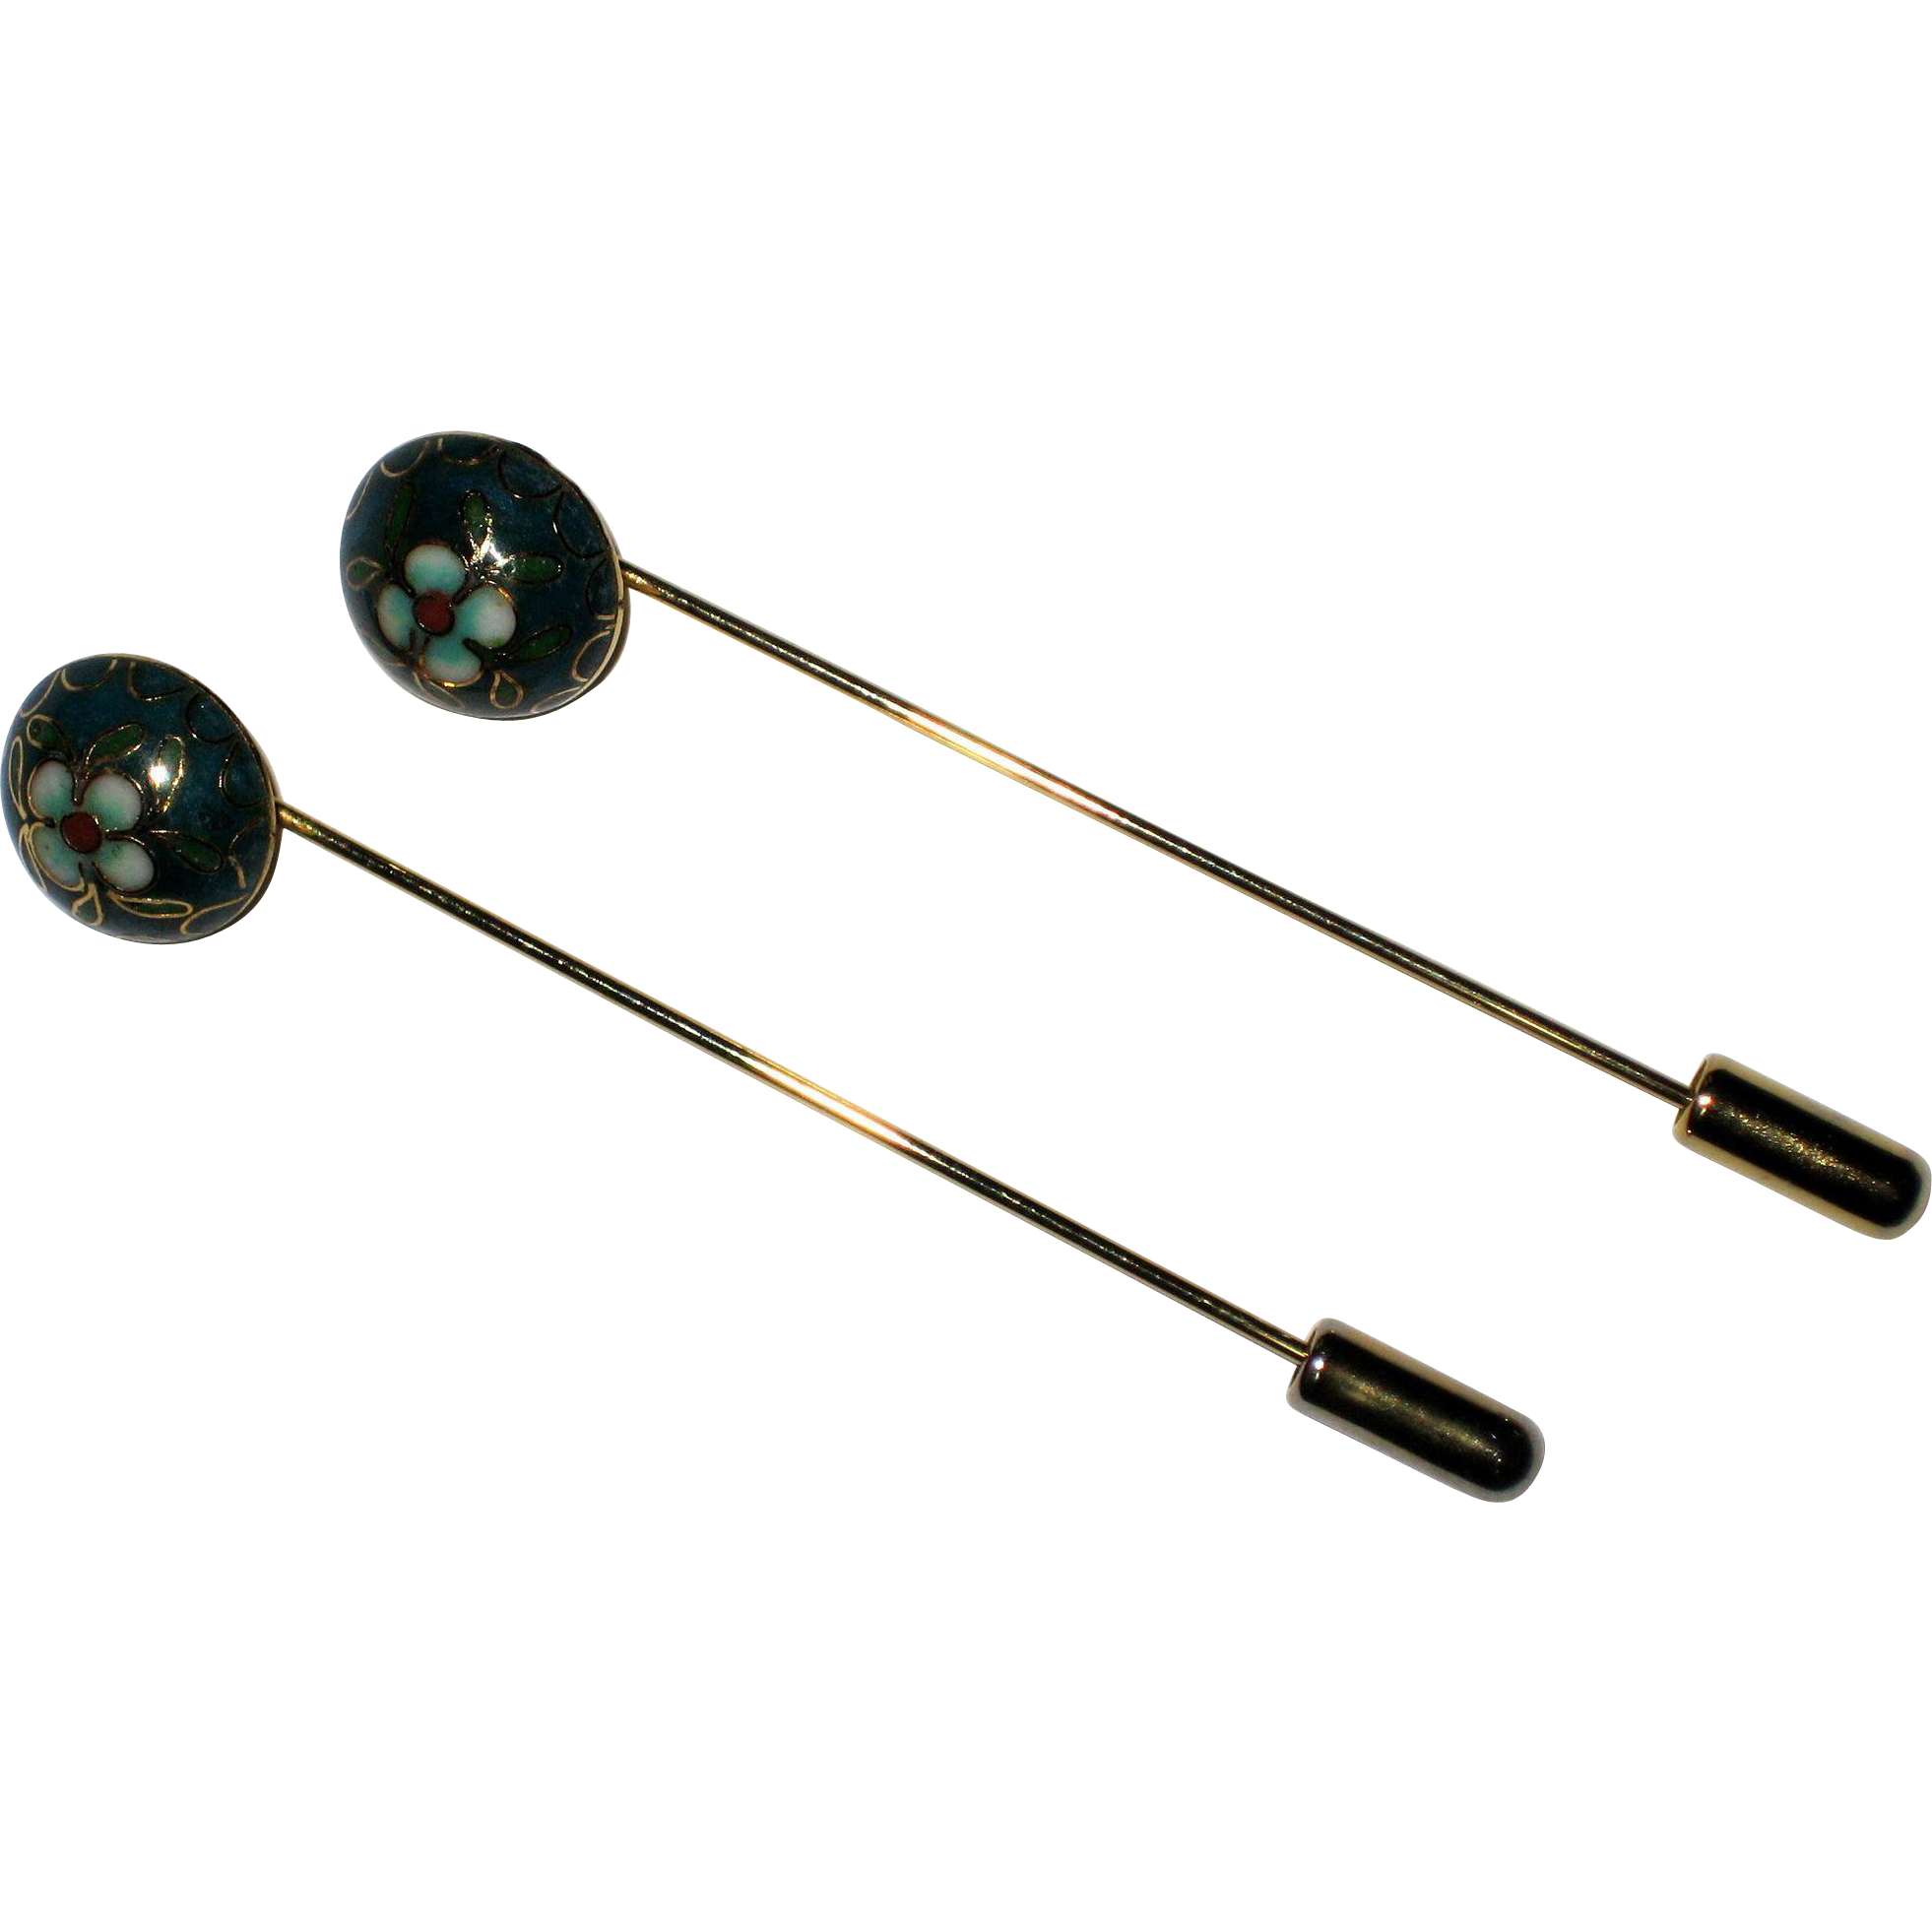 Pair of Green Cloisonne Stick Pins with Flowers